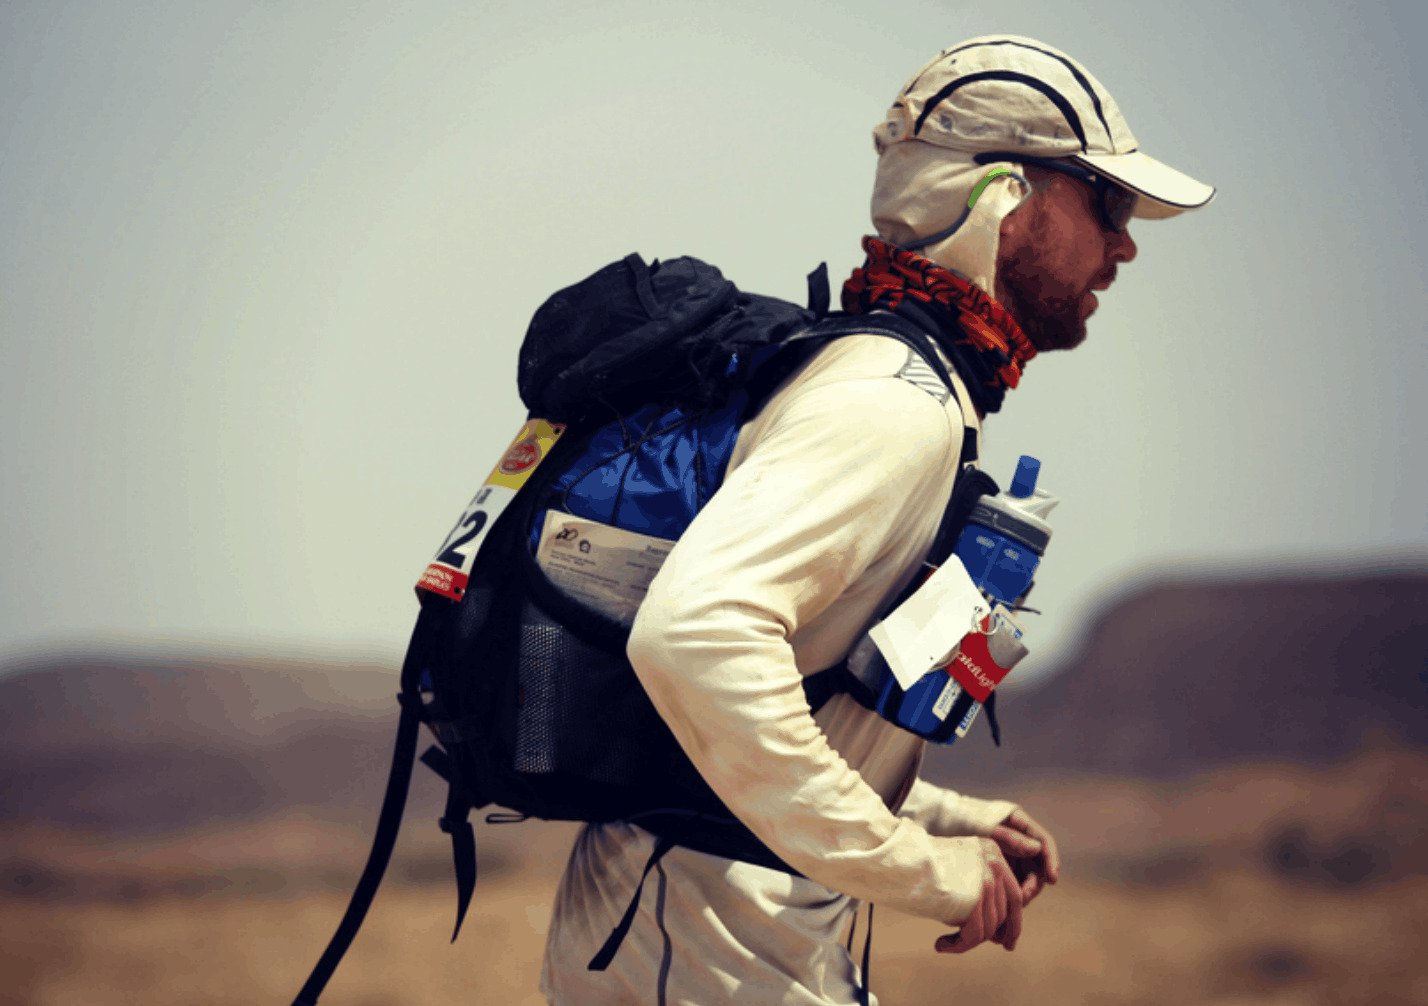 How To Choose a Stage Race Backpack